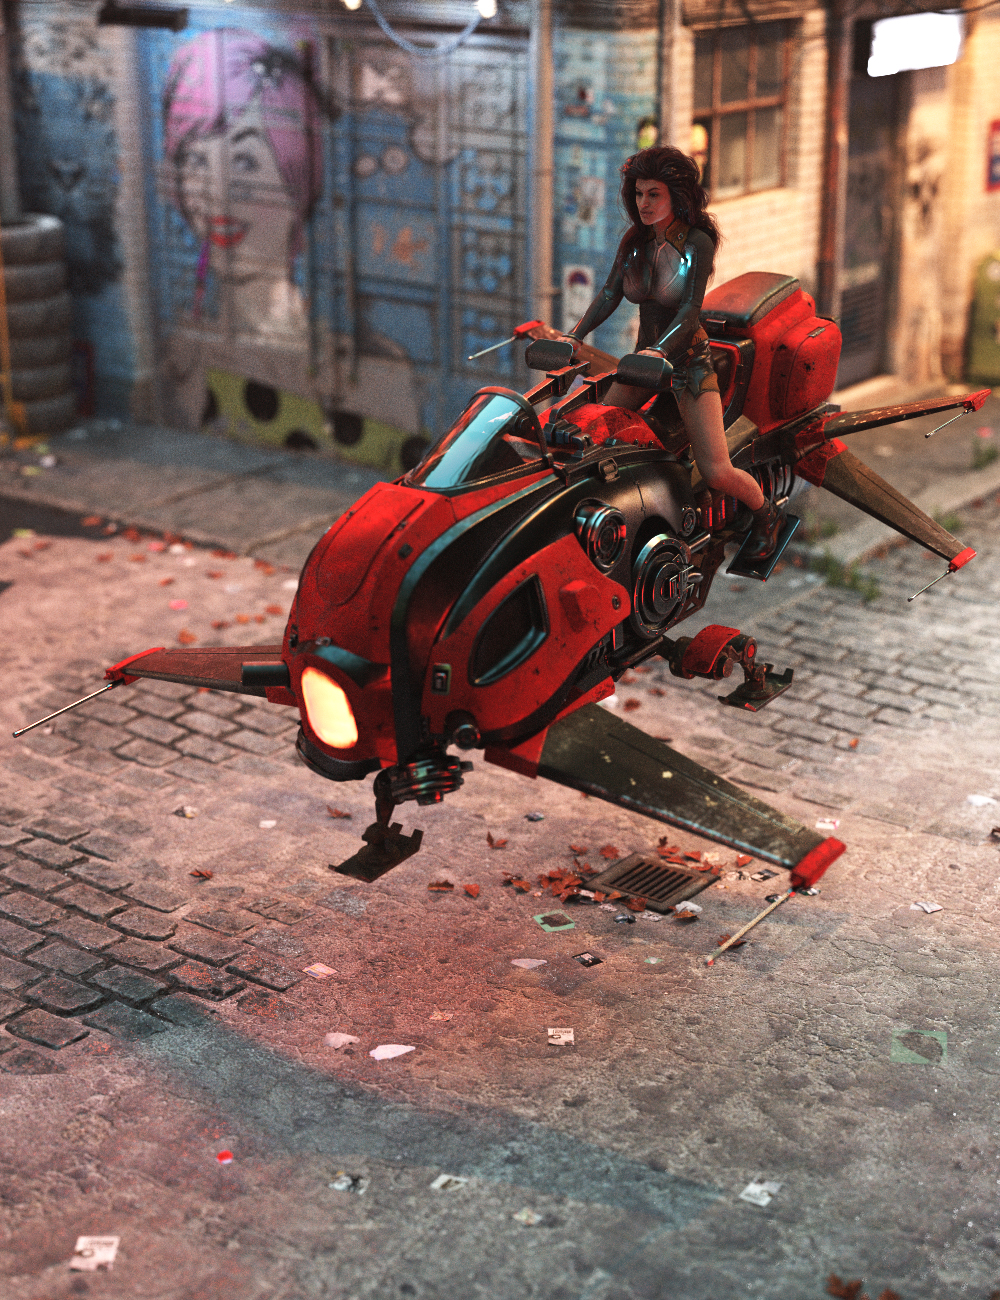 Futuristic Hover Bike by: Charlie, 3D Models by Daz 3D